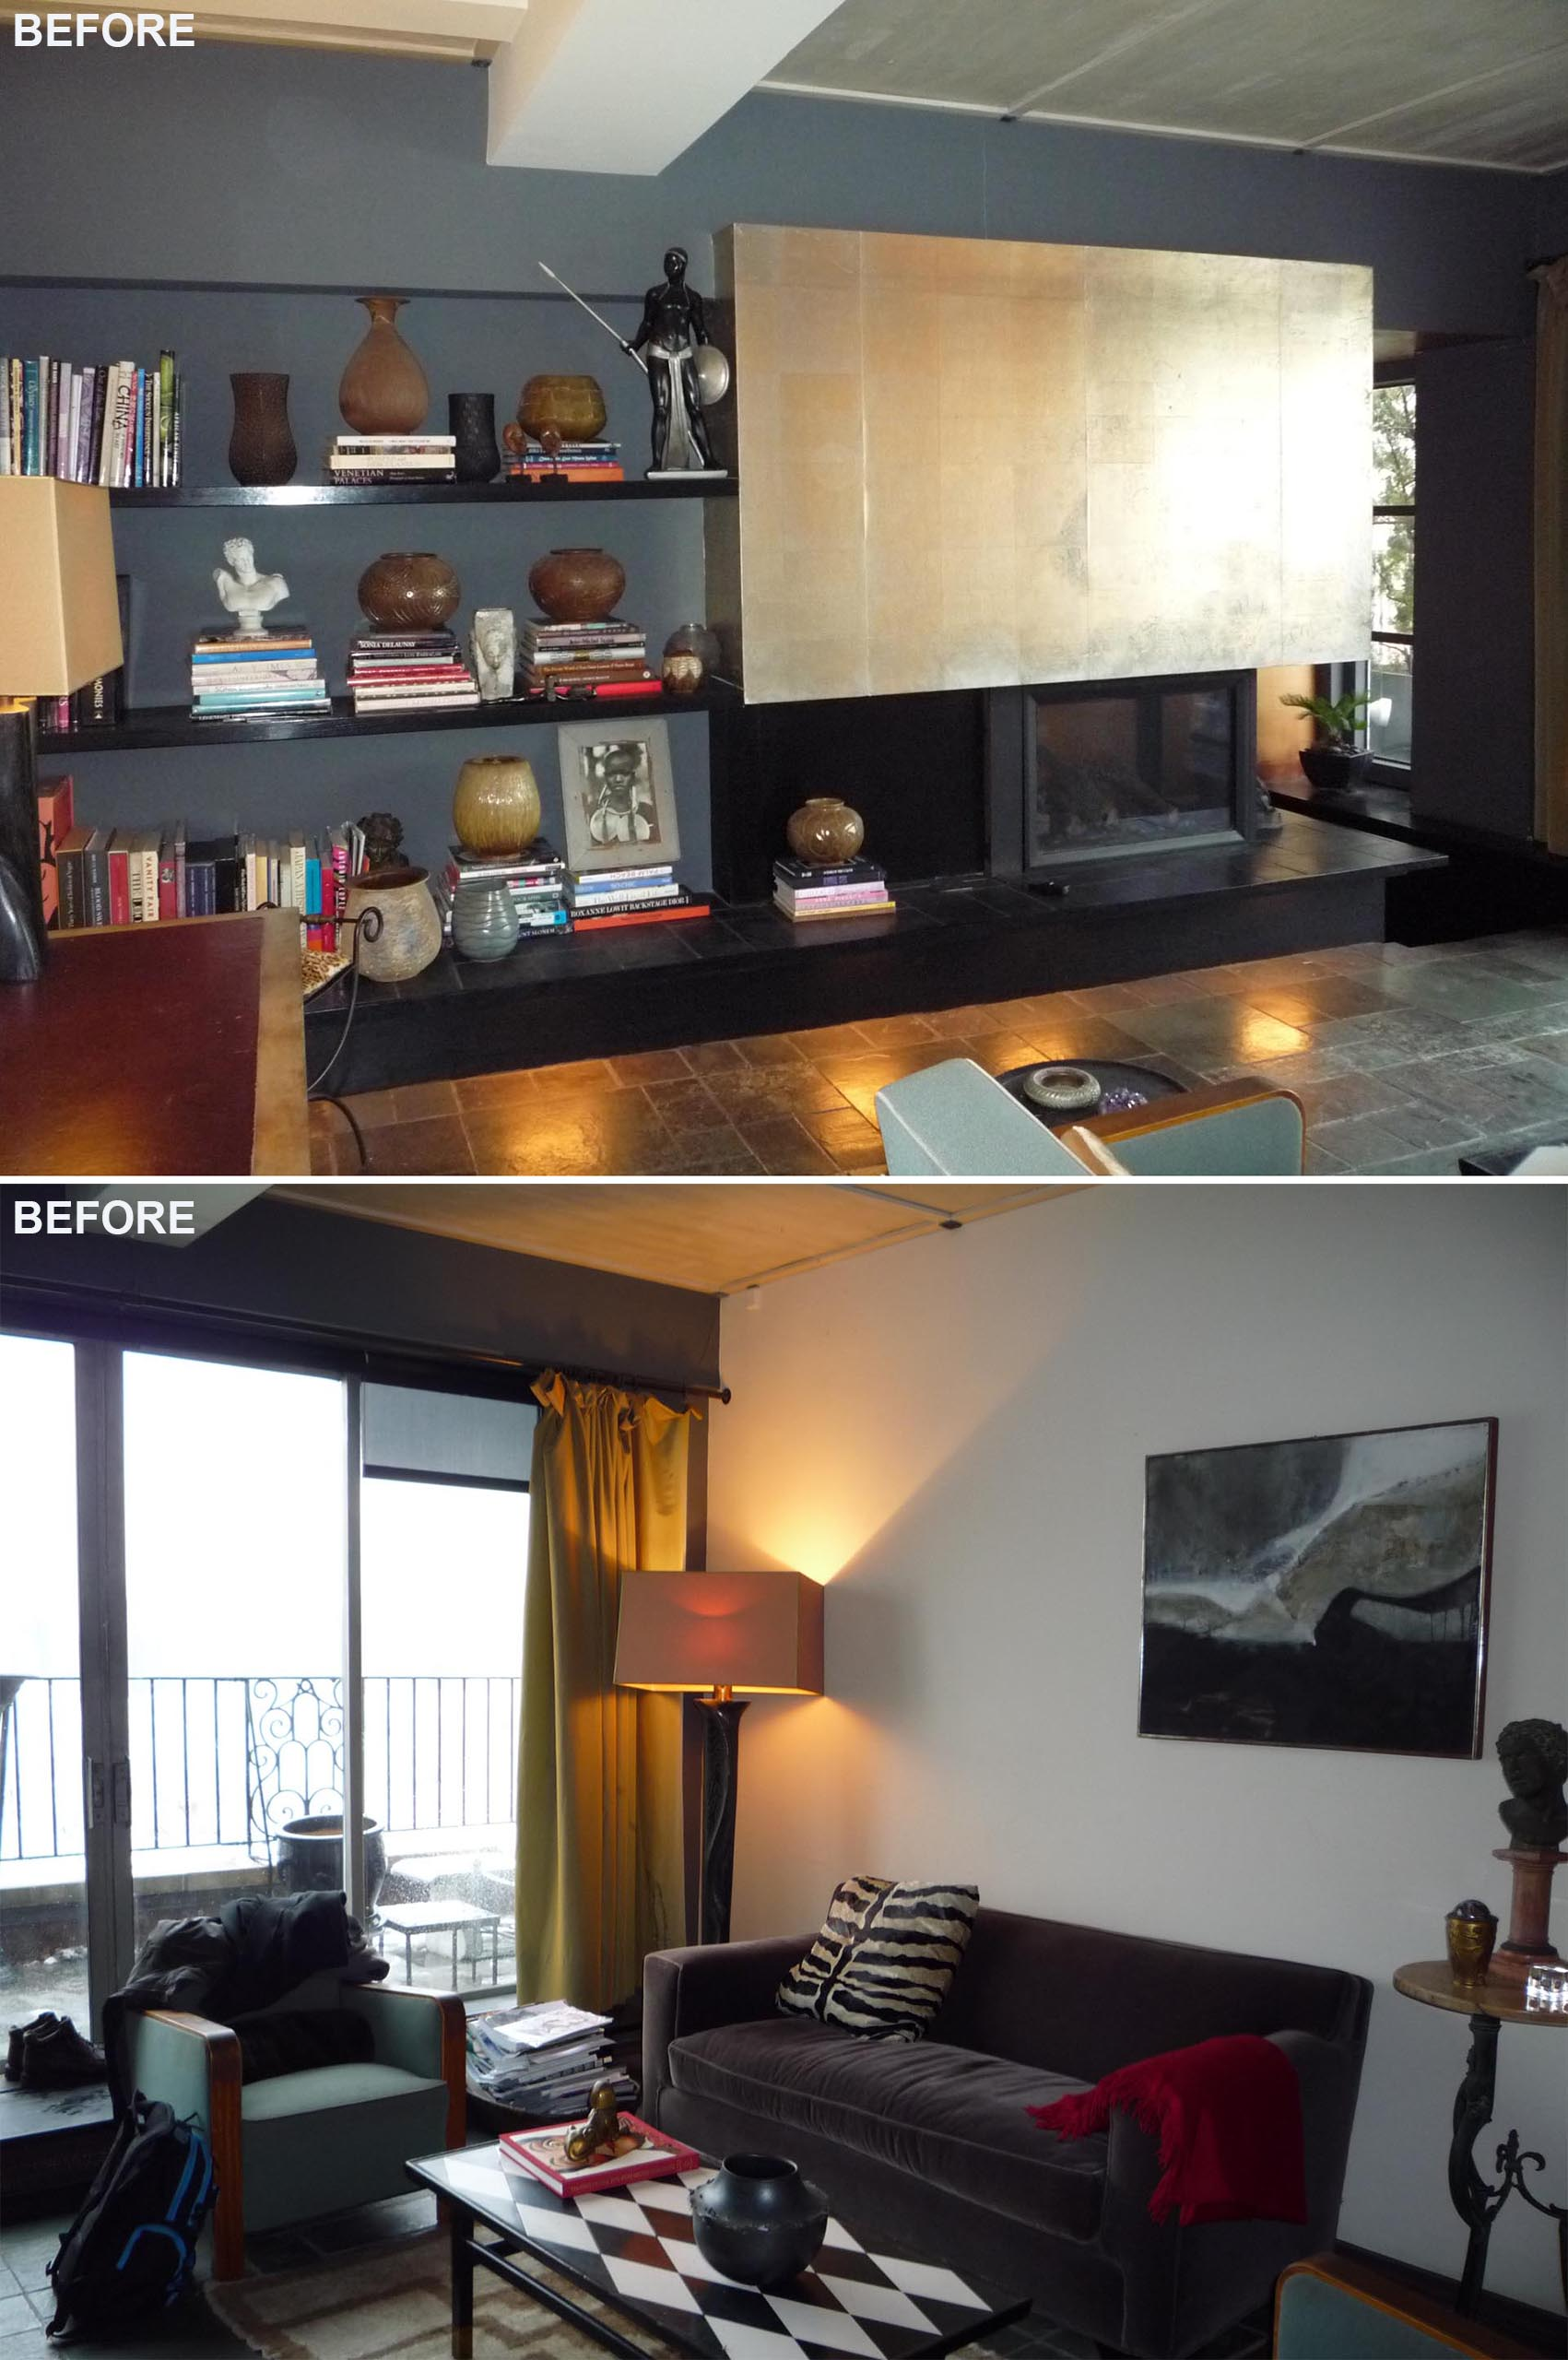 A 'before' photo of a living room with dark gray walls, a black fireplace, and metallic accent.